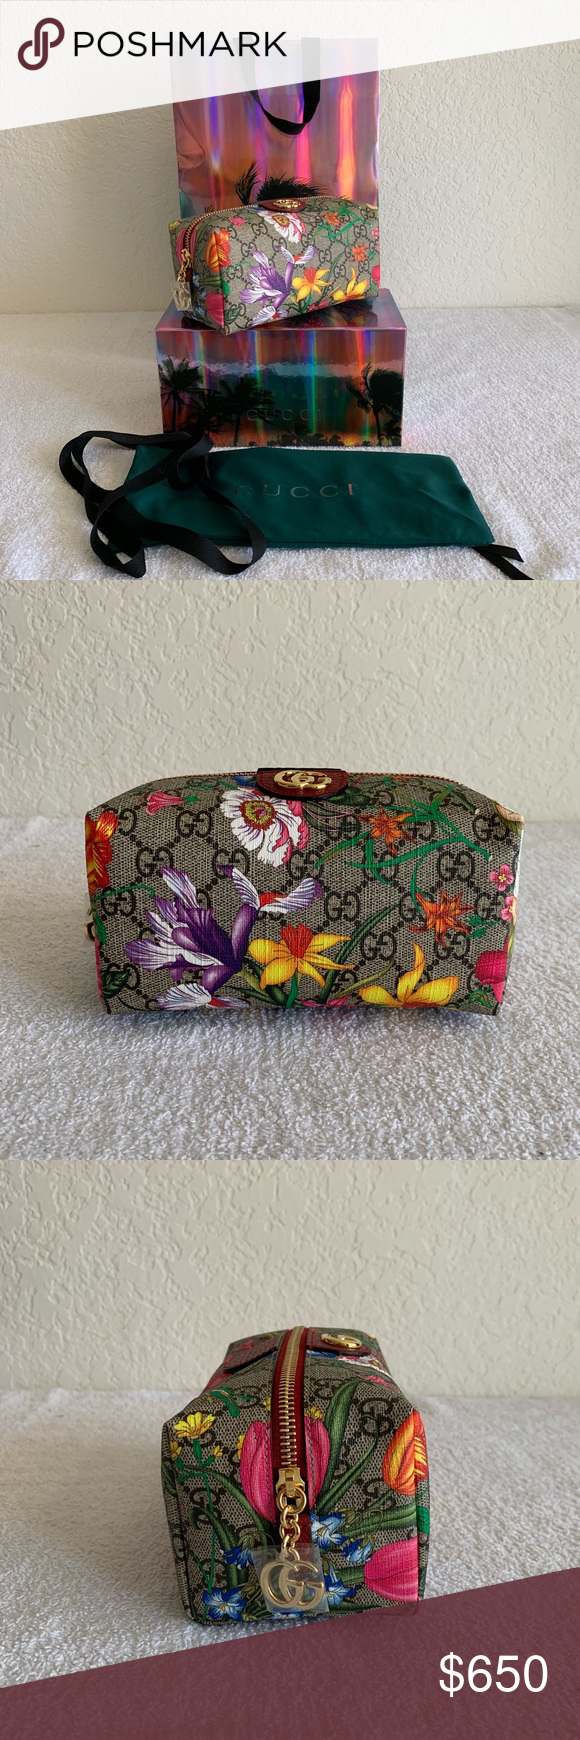 Gucci Ophidia GG Flora Cosmetics Case Brand NEW with tag